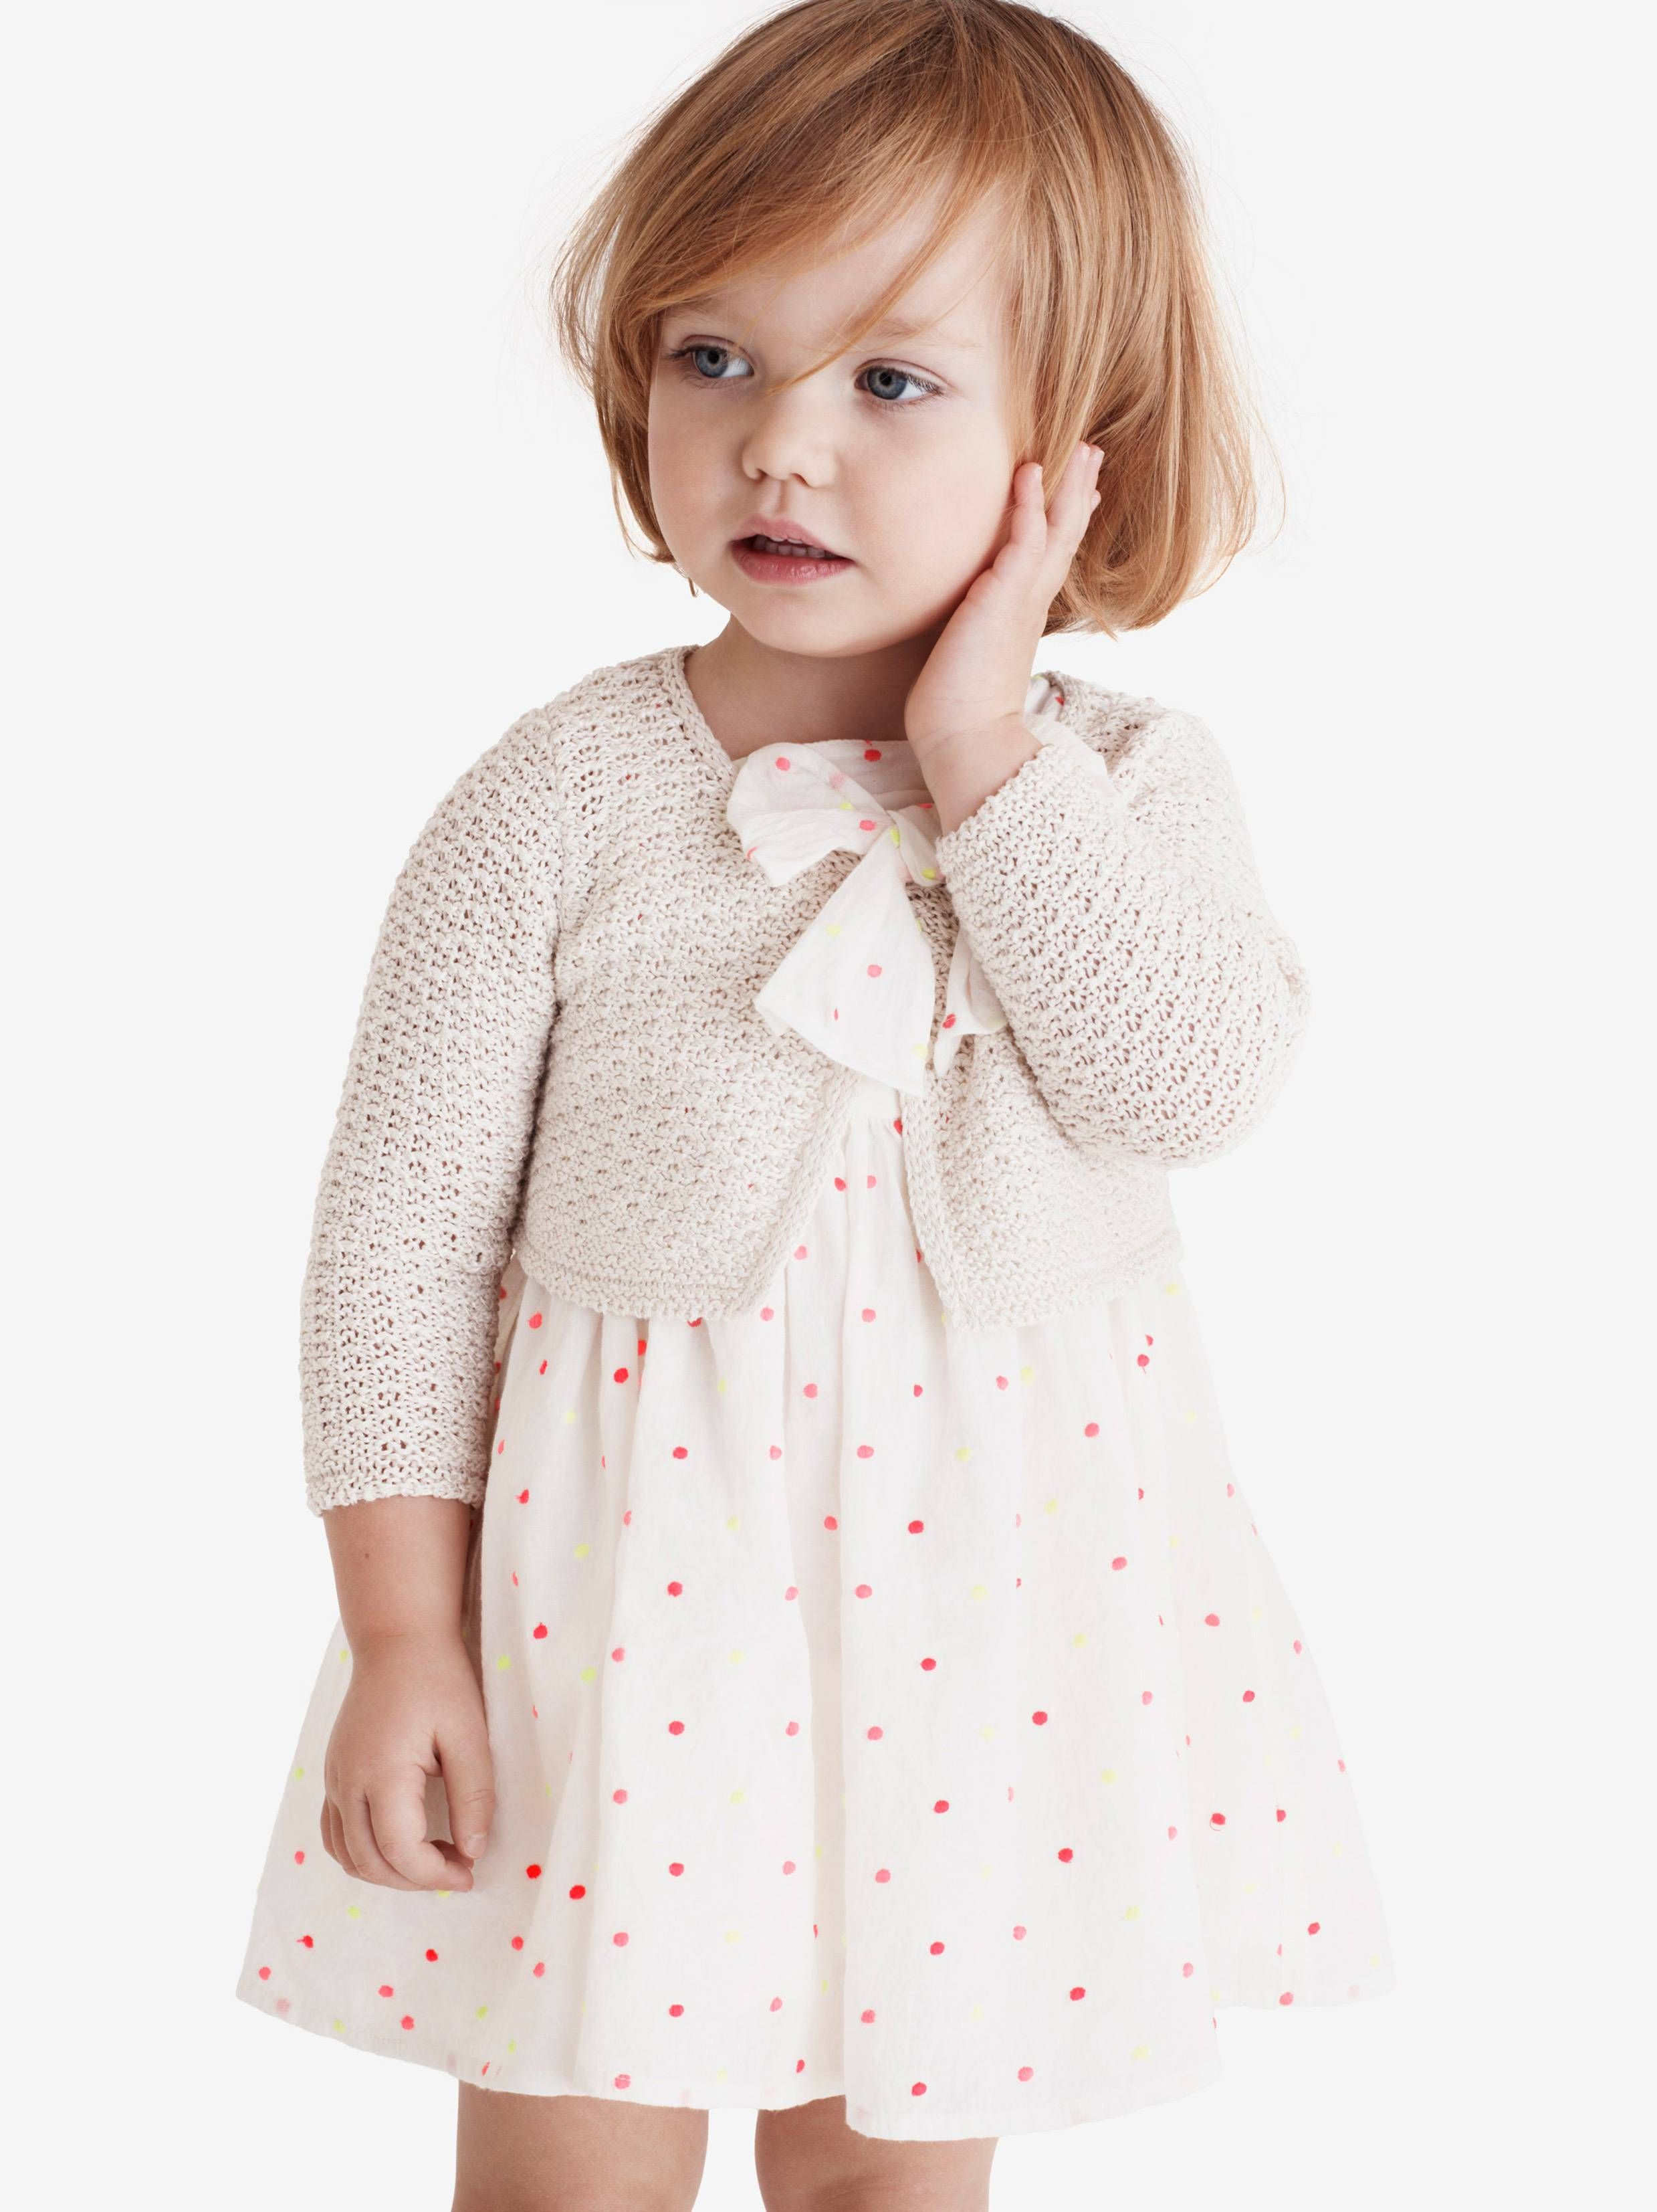 ZARA BABY· CAMPAIGN SS12 Perfection Pinterest